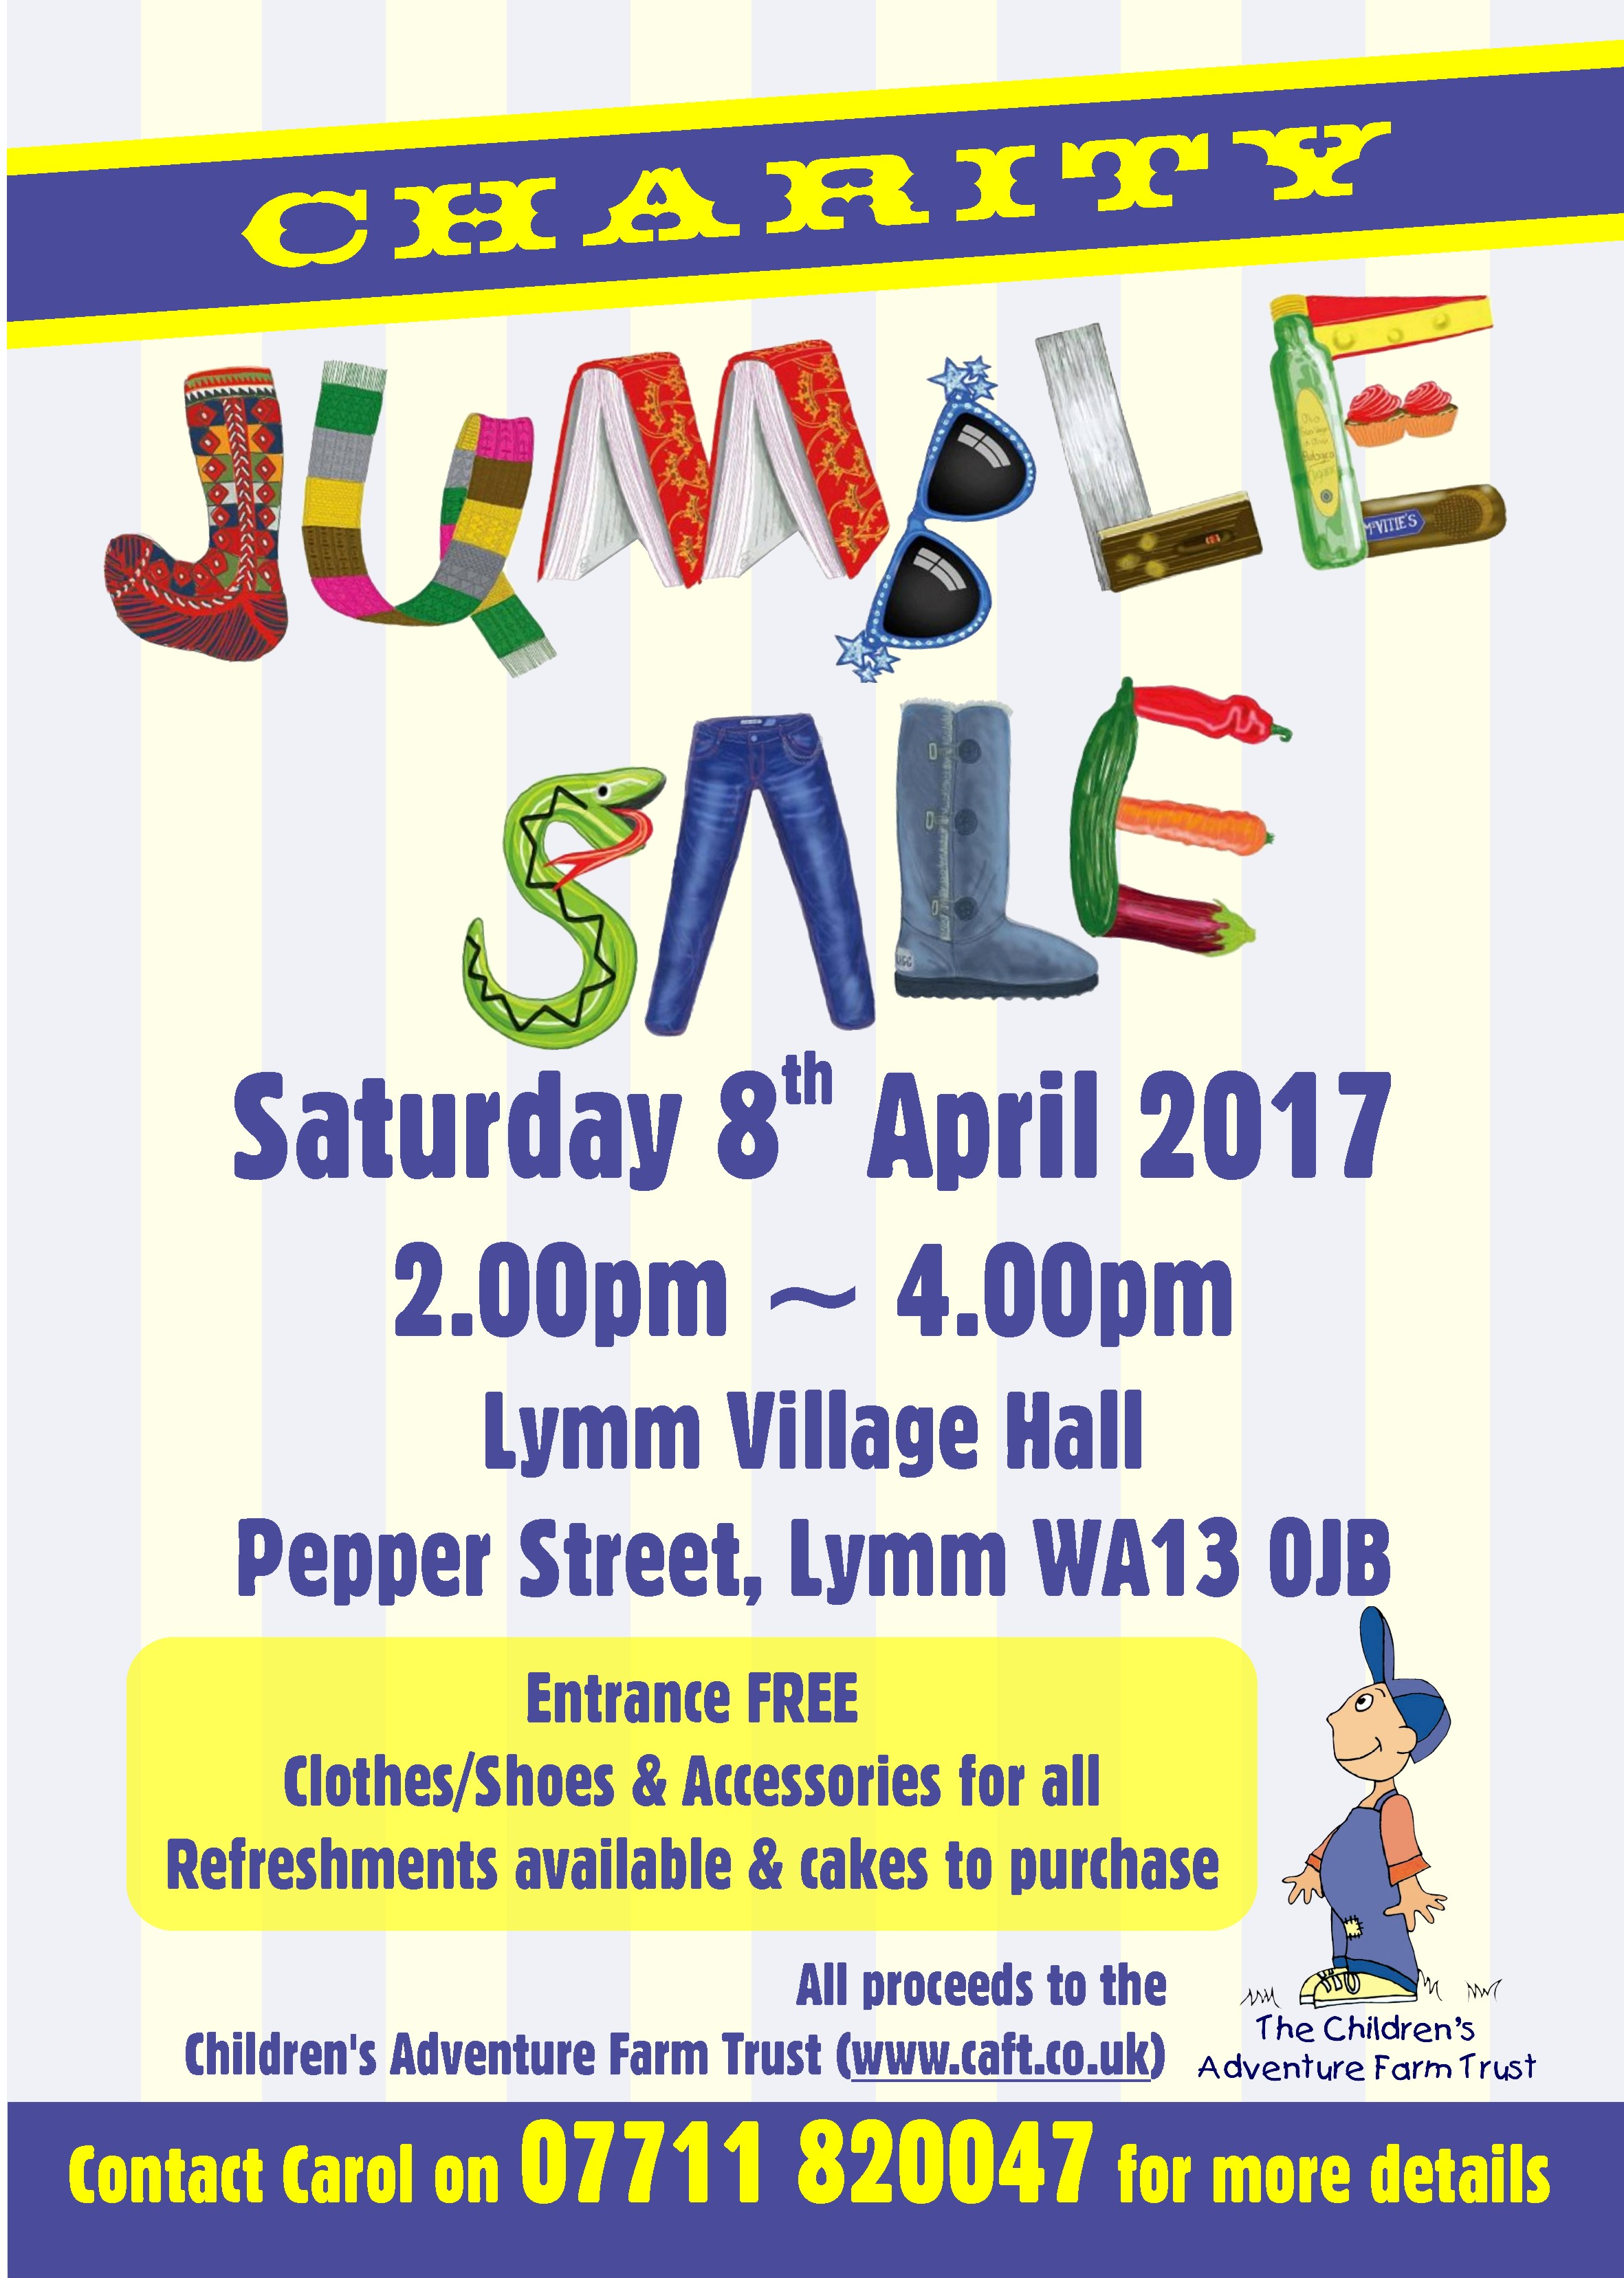 Charity Jumble Sale in Lymm